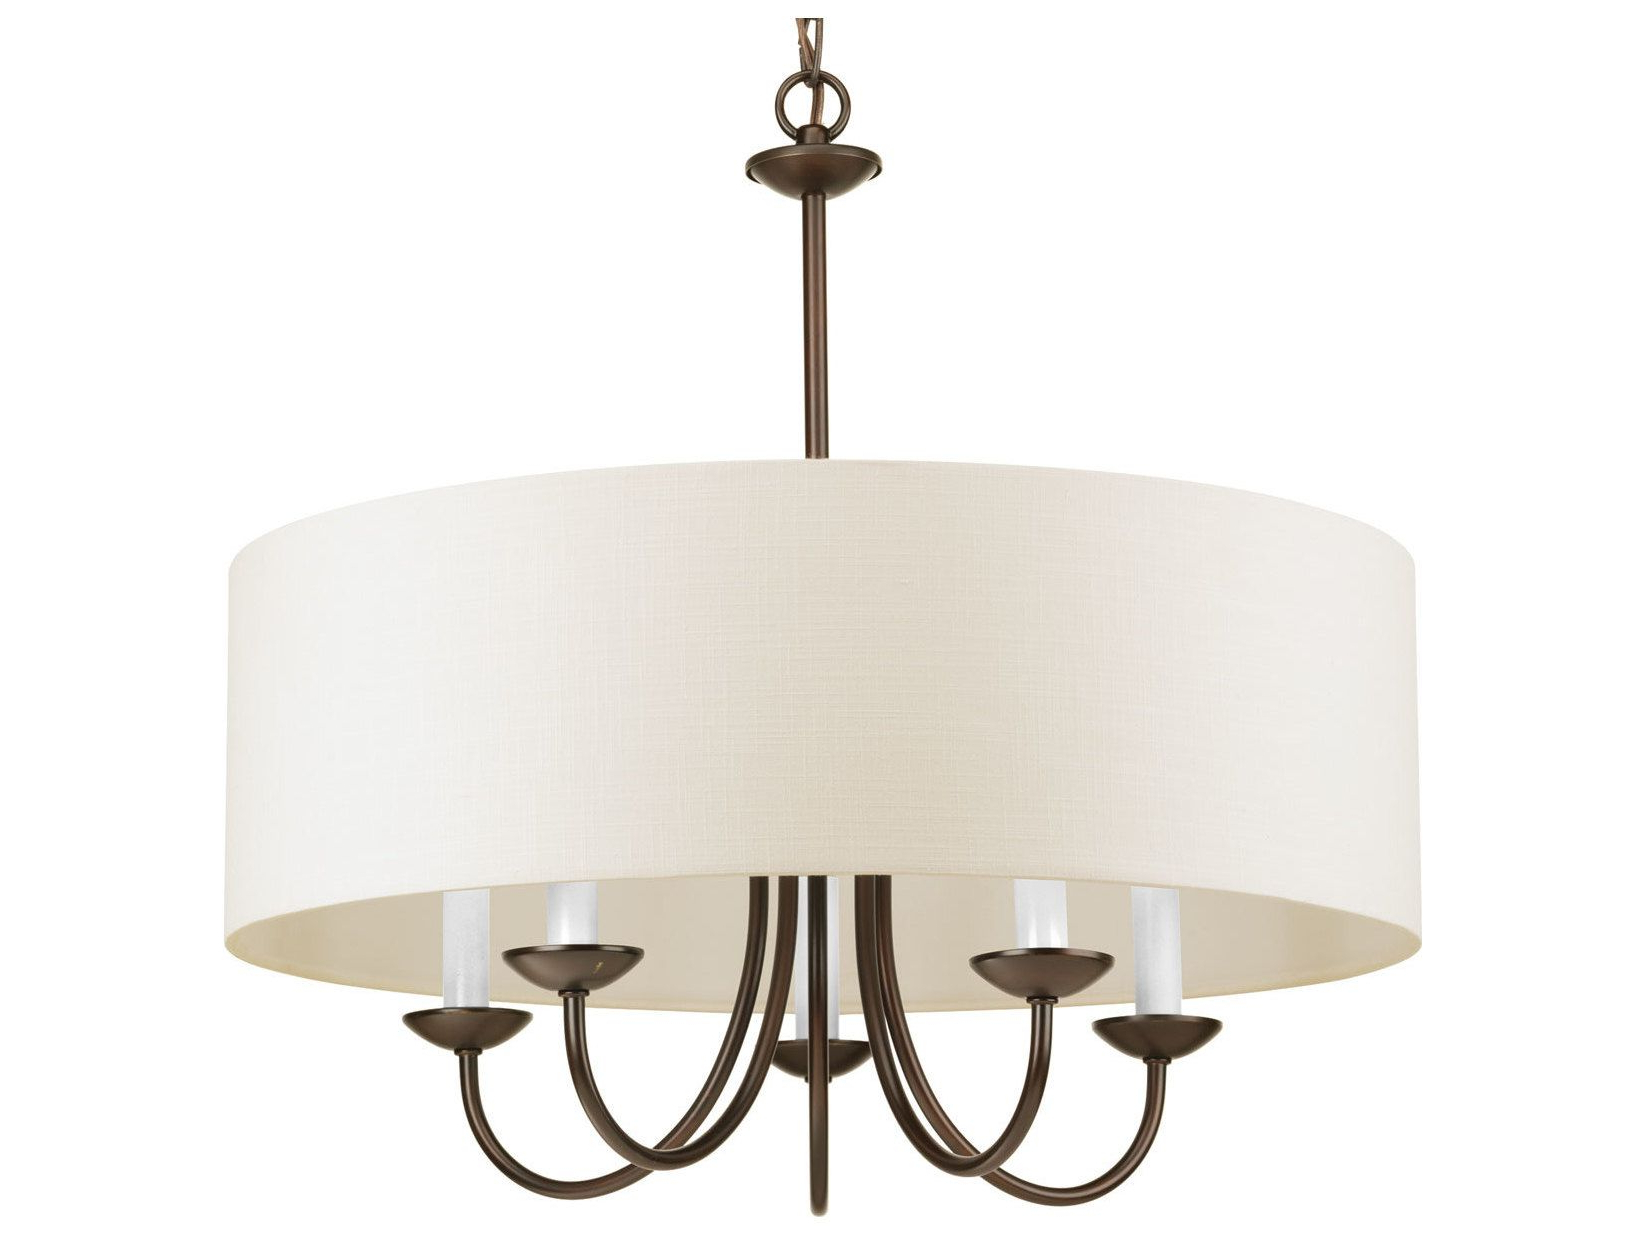 Lighting Ideas With Burton 5 Light Drum Chandeliers (View 5 of 20)